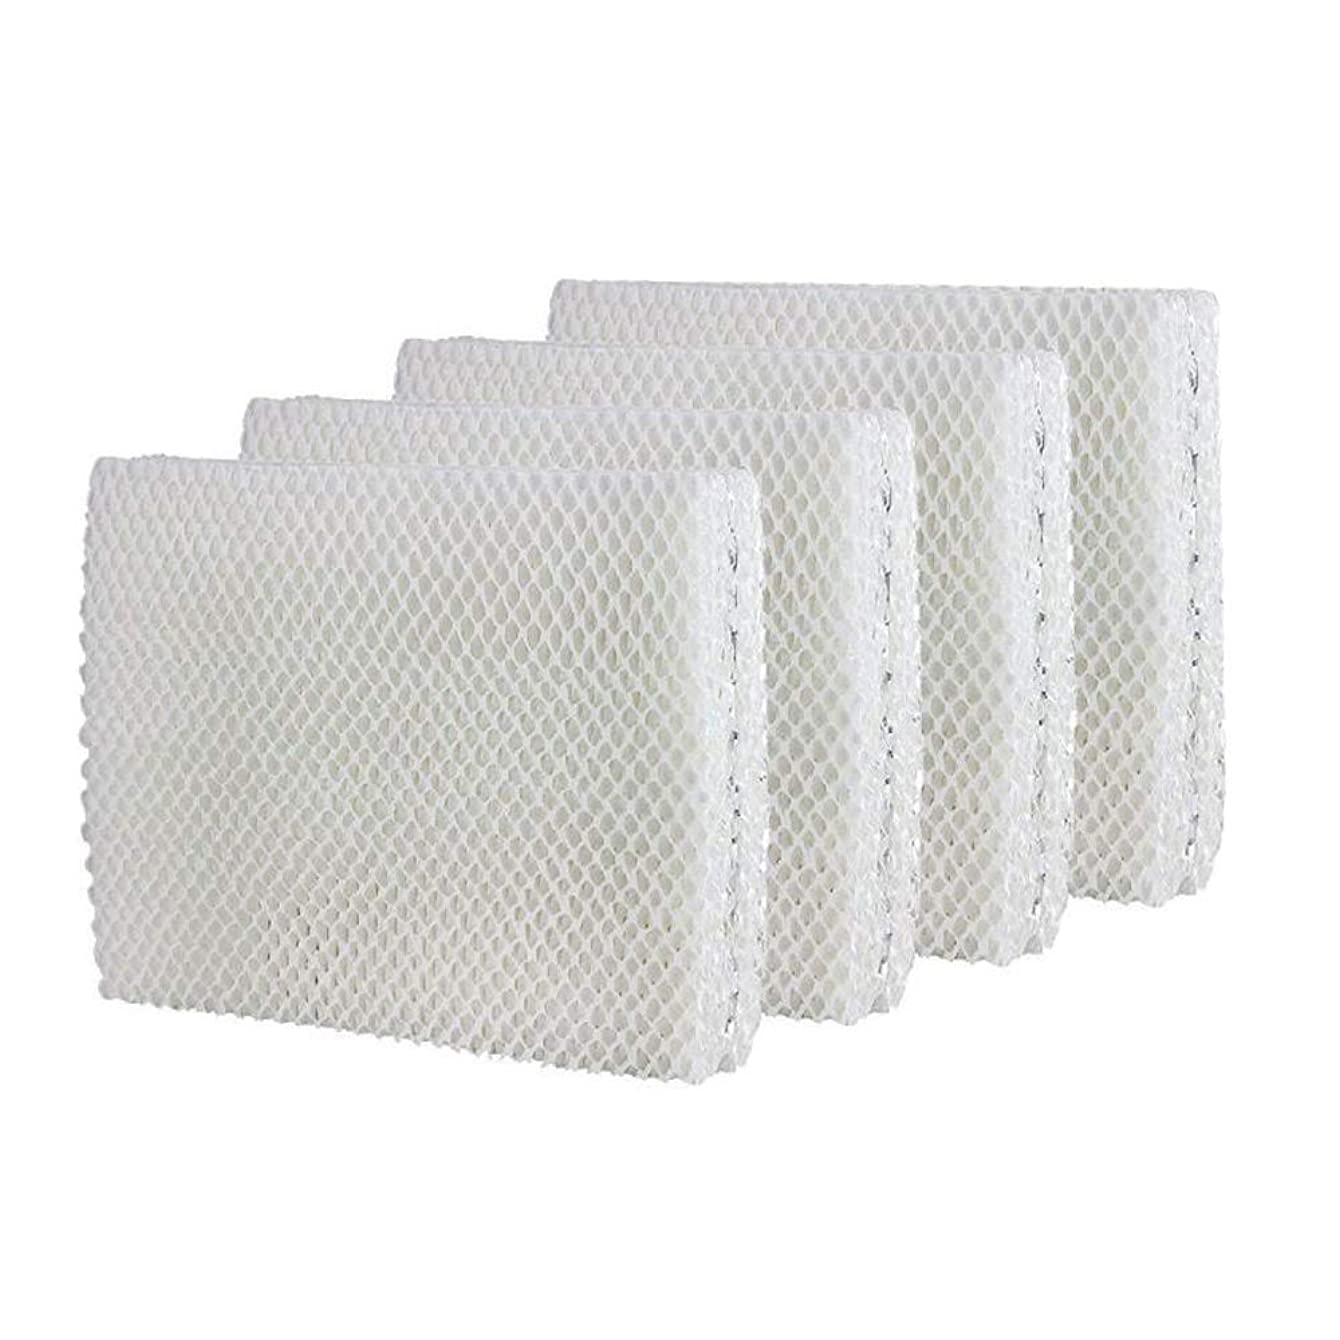 ANTOBLE Humidifier Wick Filters for Vornado MD1-0001, MD1-0002, MD1-1002, Evap2, Evap1 Humidifier (4)